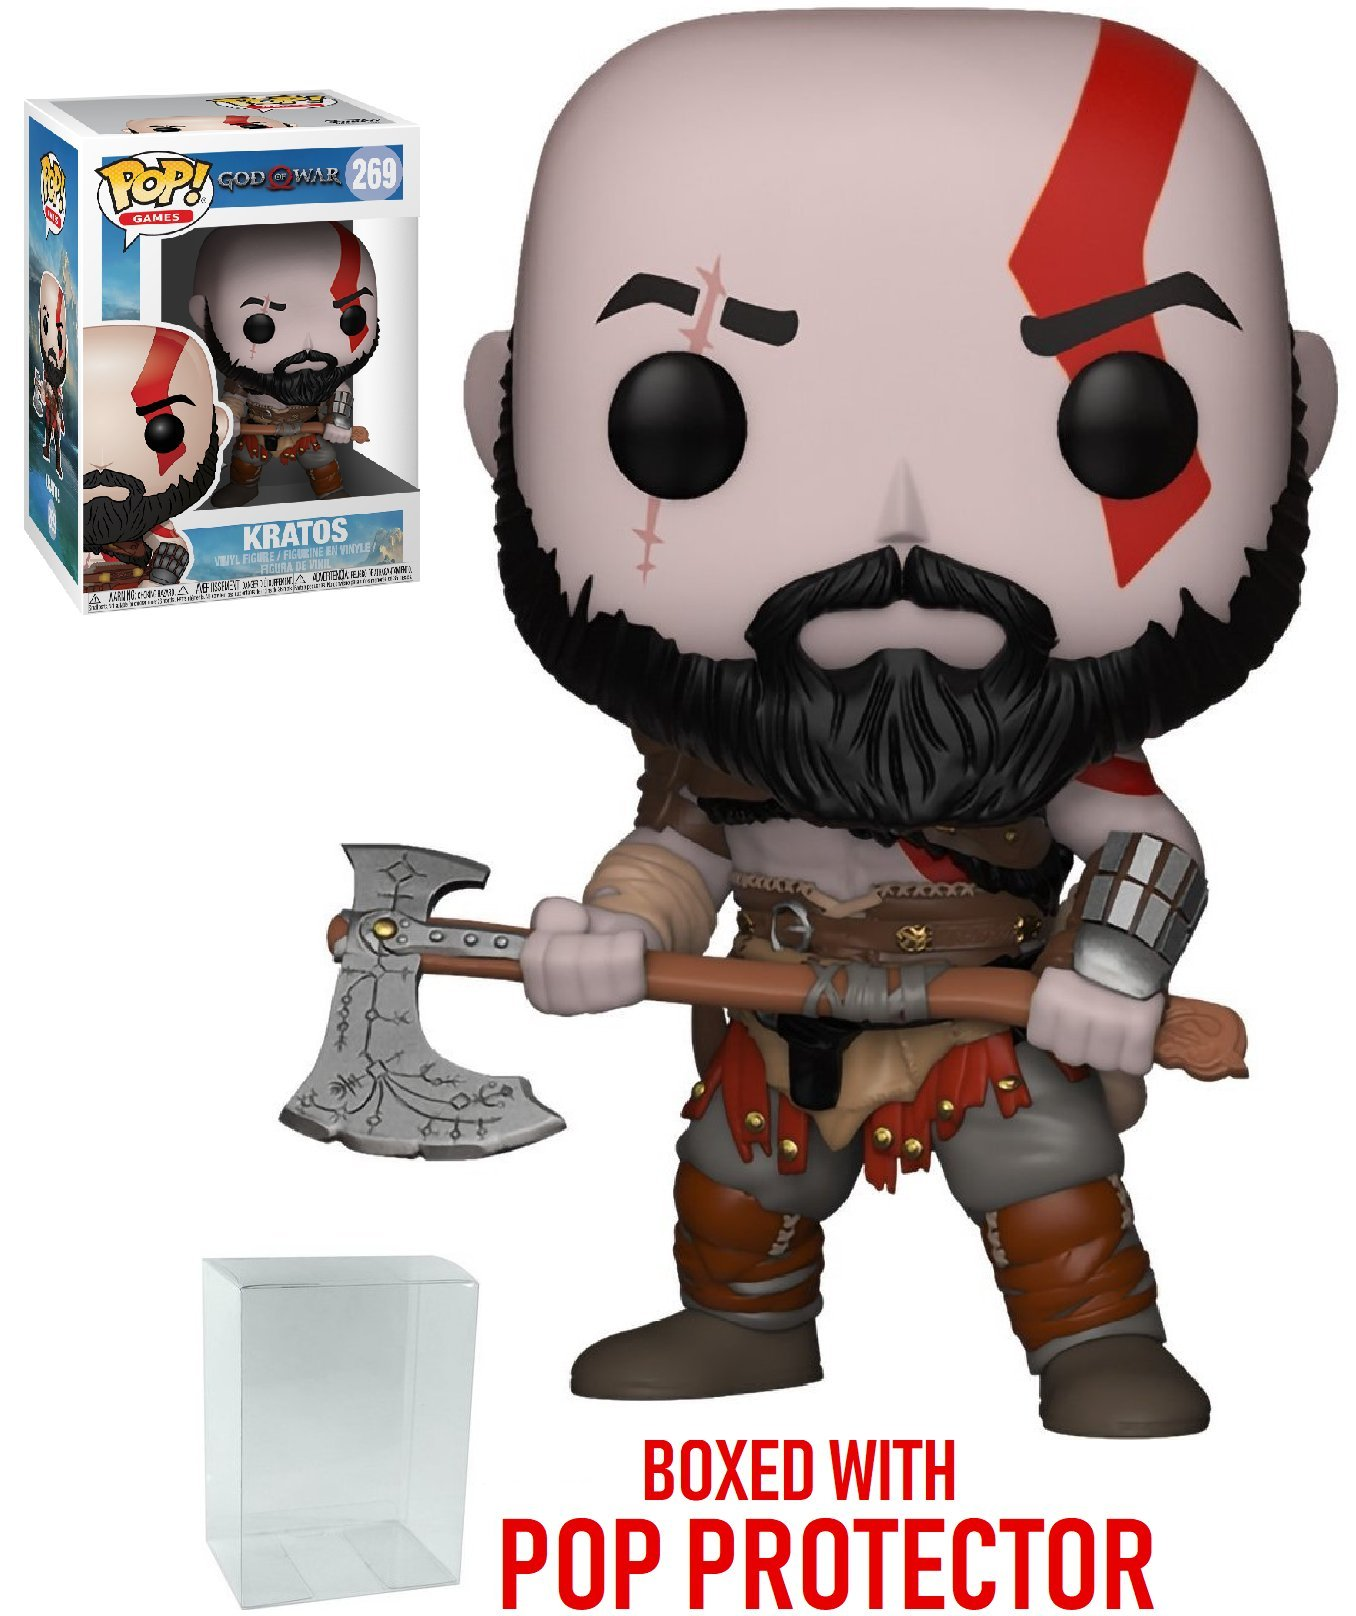 Funko Pop Games God of War-Kratos with Axe Collectible Figure